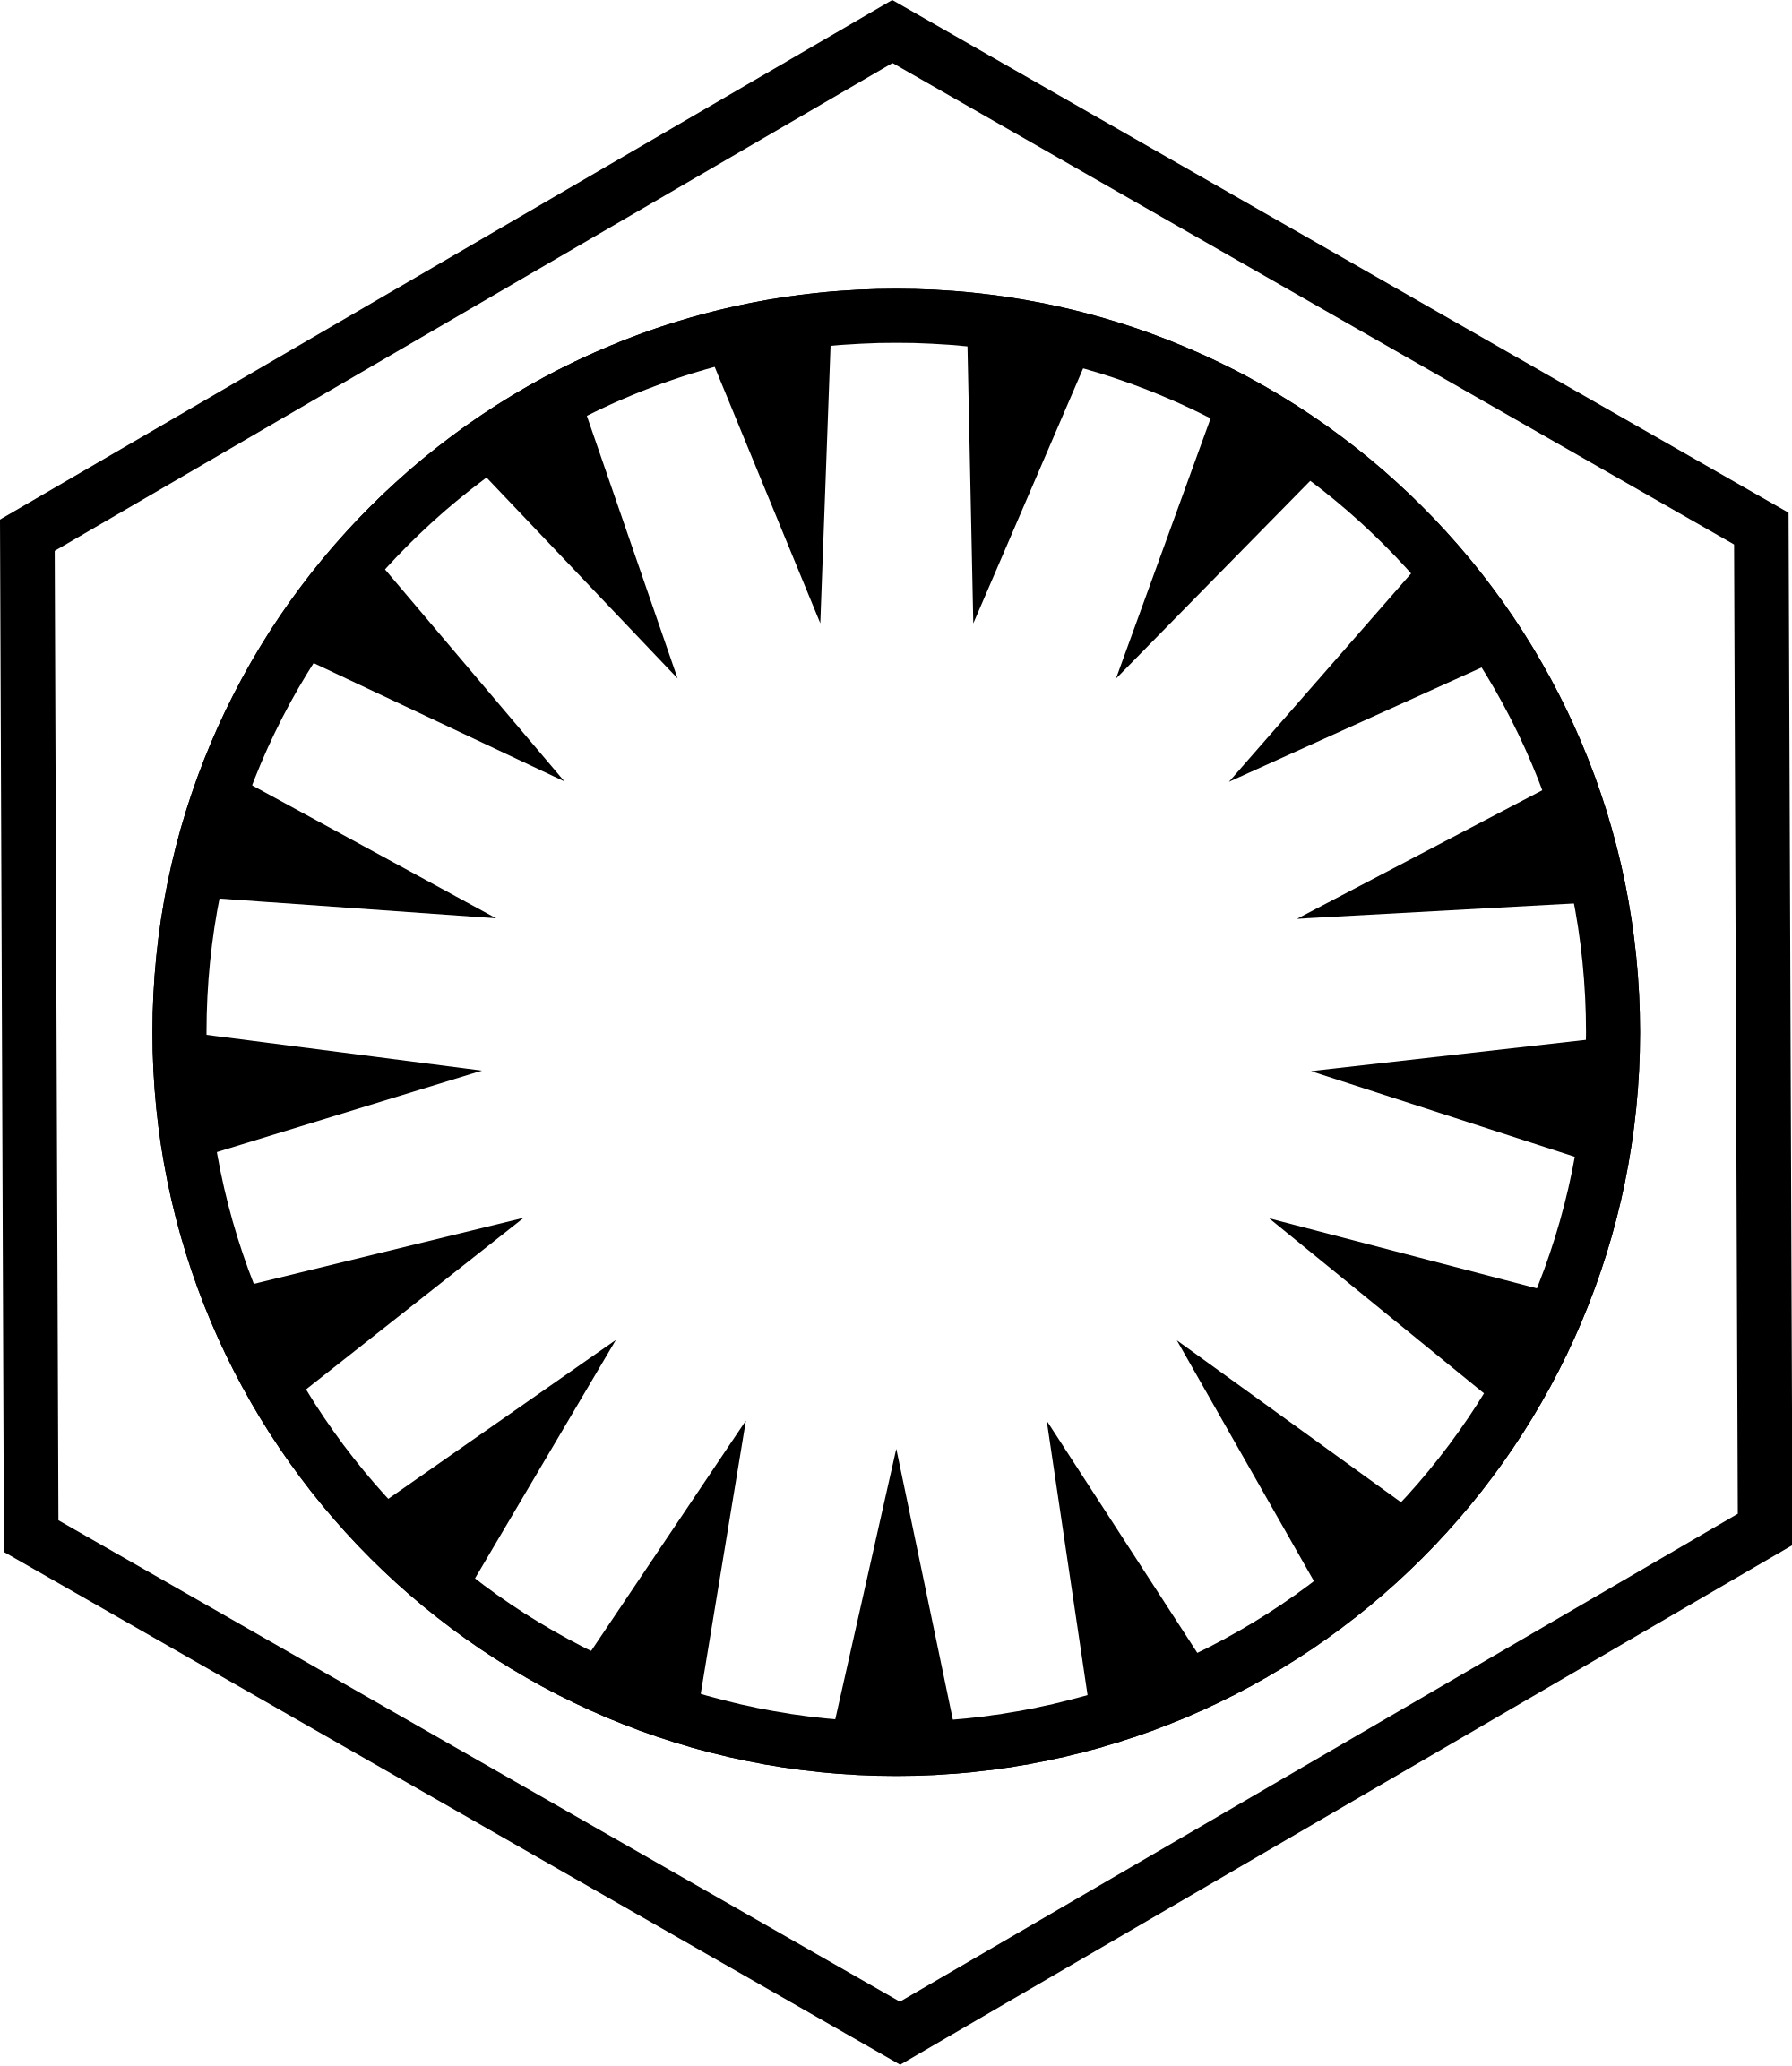 Stormtrooper svg first order. Star wars wikipedia emblem